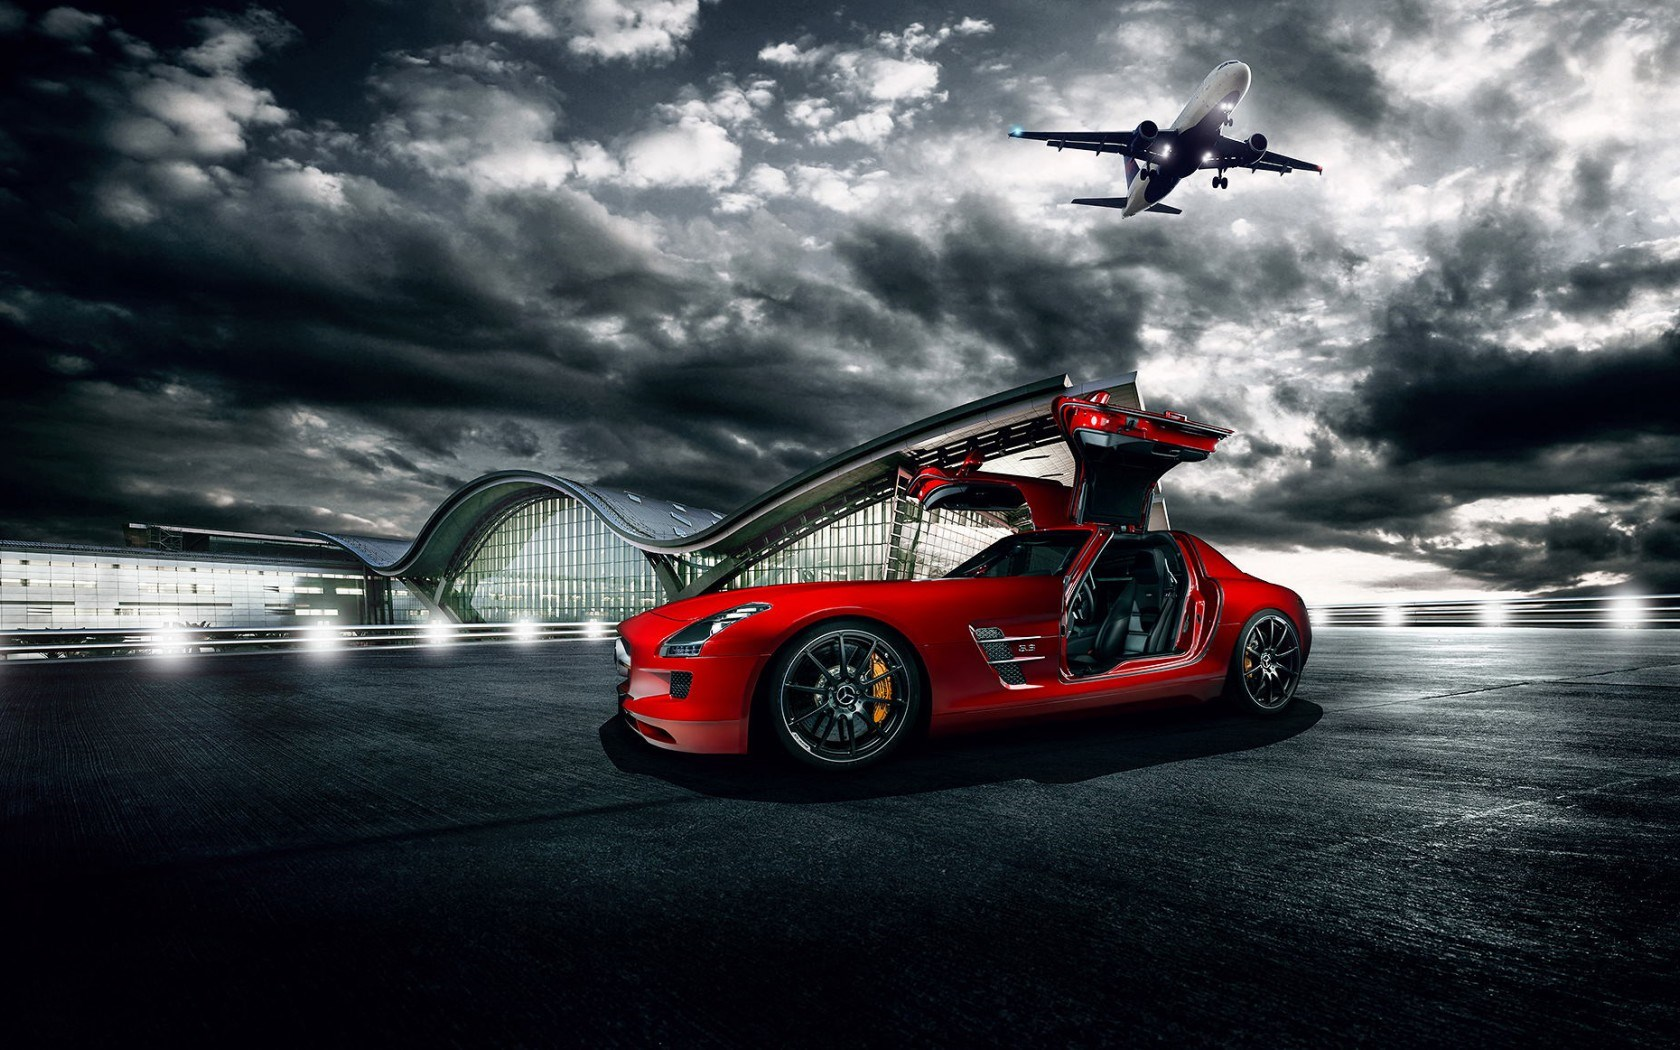 50 Super Sports Car Wallpapers Thatll Blow Your Desktop Away 1680x1050